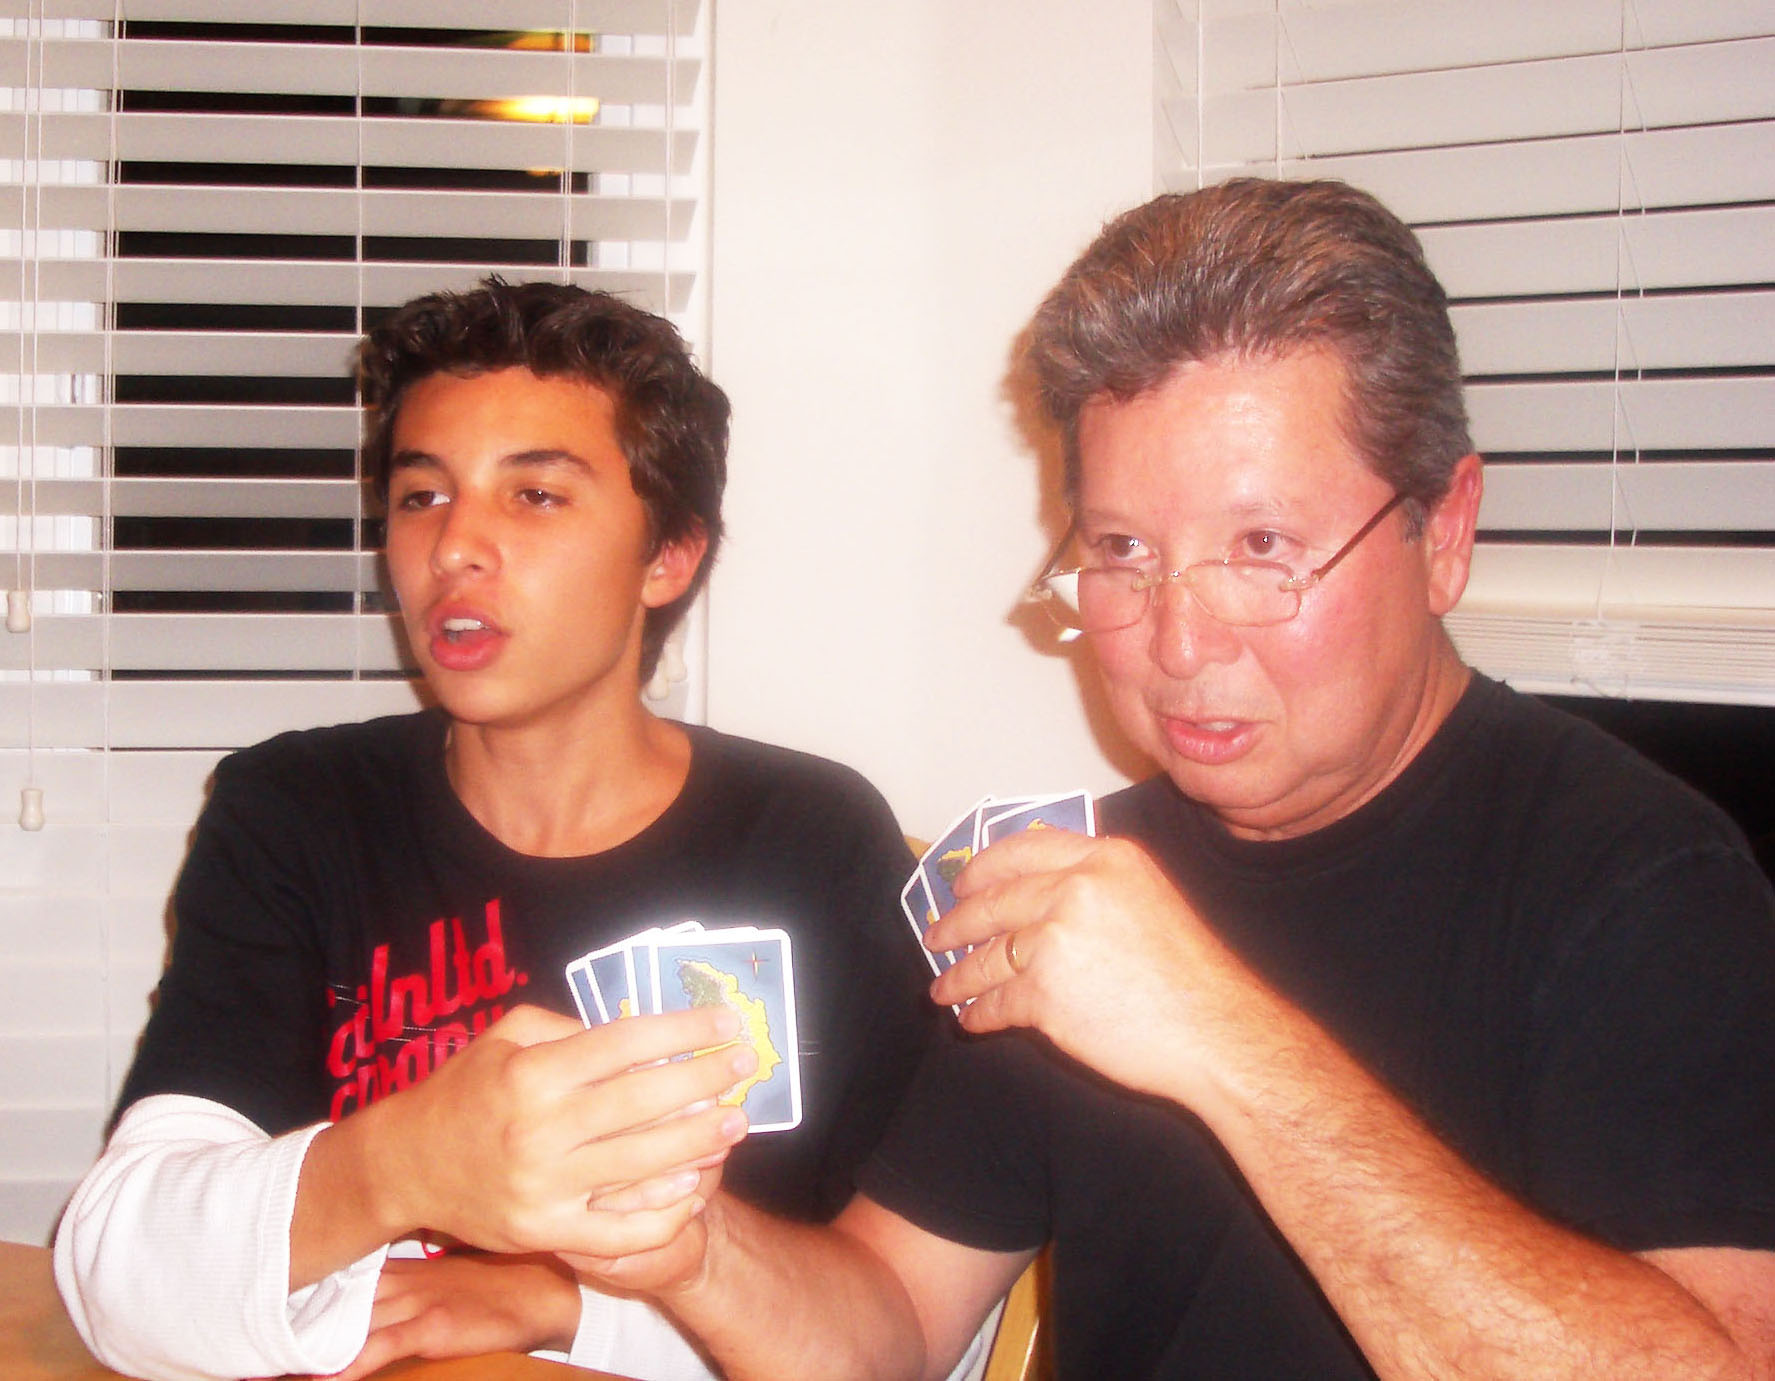 Daniel and dad playing cards cropped.jpg